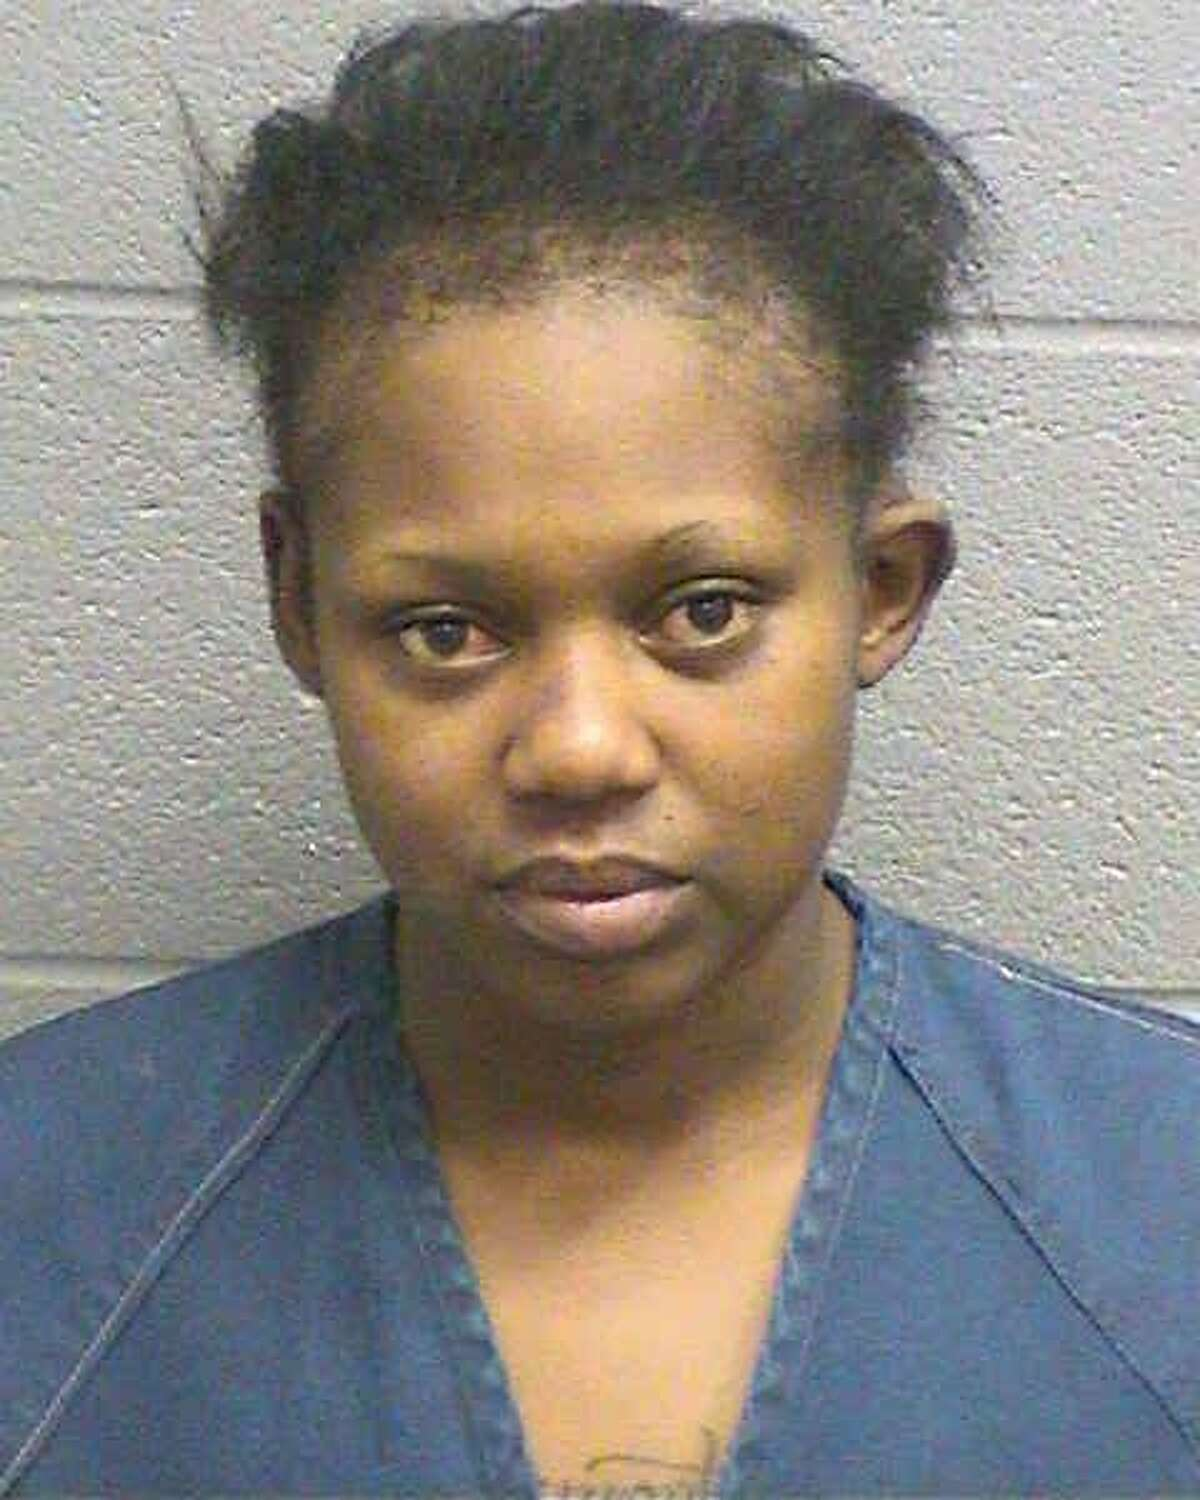 Lakia Shauntee Braziel, 27, of Midland, was charged April 8 with a second-degree felony charge of aggravated assault with a deadly weapon.Braziel got angry with a woman and allegedly threw a metal iron at the woman, hitting her in the elbow. She also punched the woman in the face about four times, according to MRT records.If convicted, she faces up to 20 years in prison.